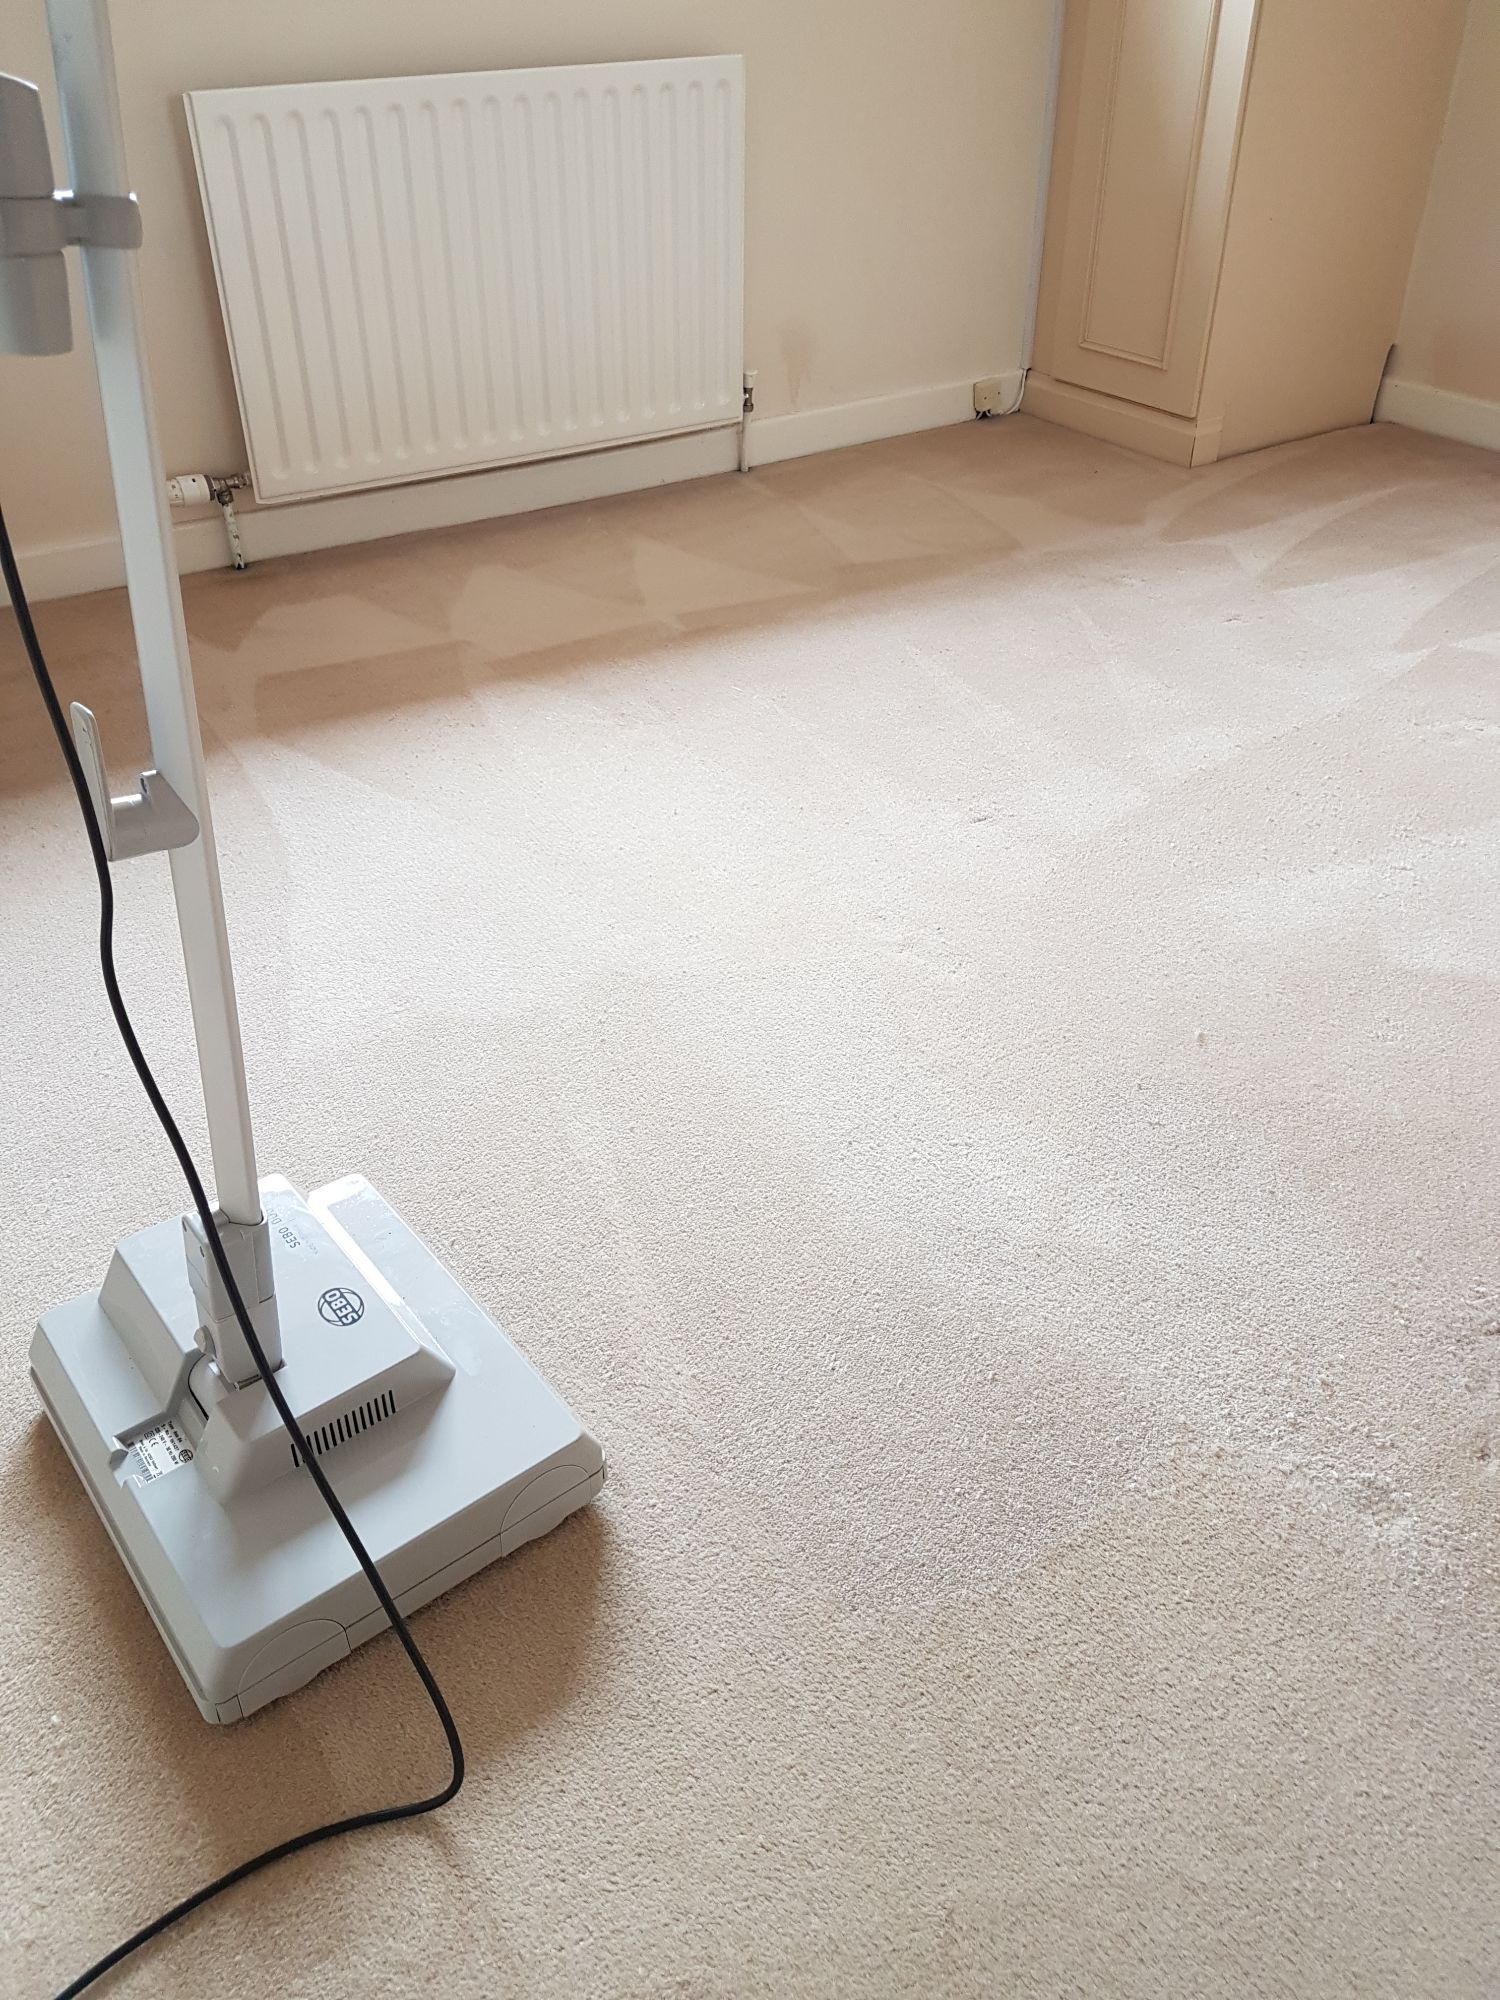 Sebo Duo, Pile lifter crb machine Carpet & Upholstery Cleaning Lancashire